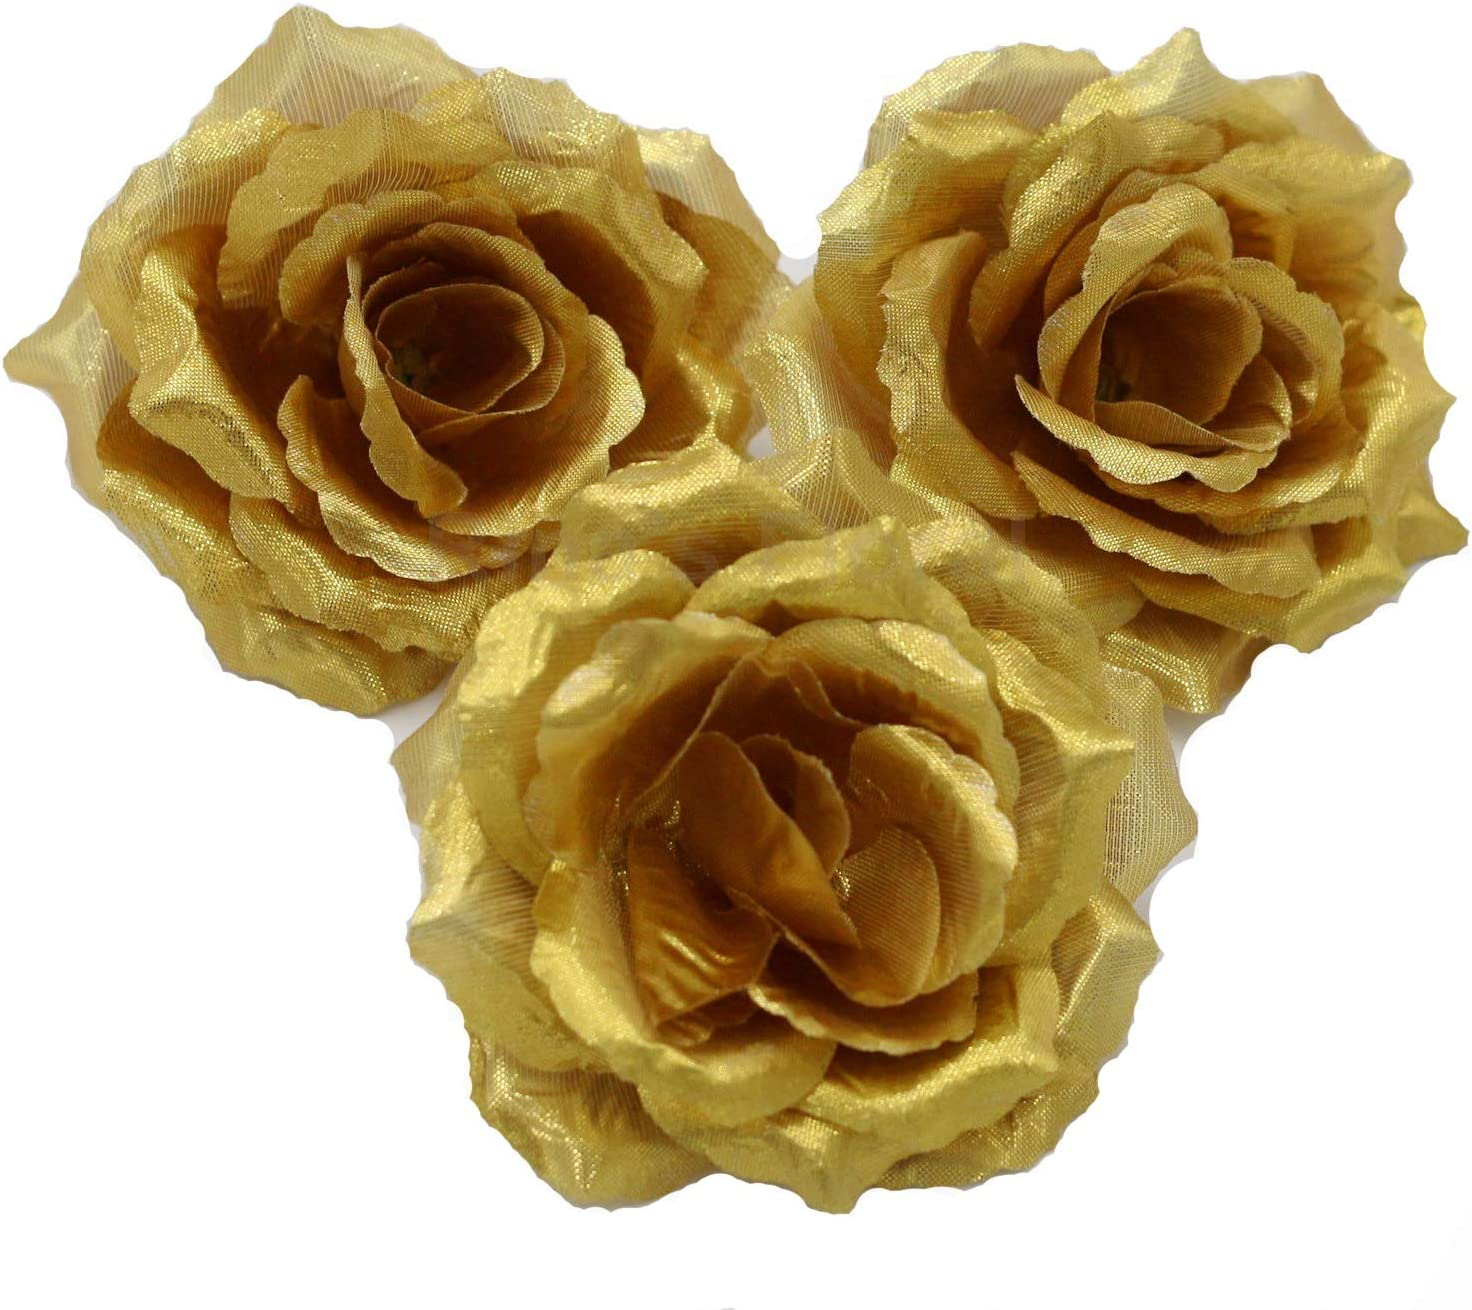 Silk Flowers Wholesale 100 Artificial SALENEW very popular! Rose Limited time for free shipping Bulk Flowe Heads